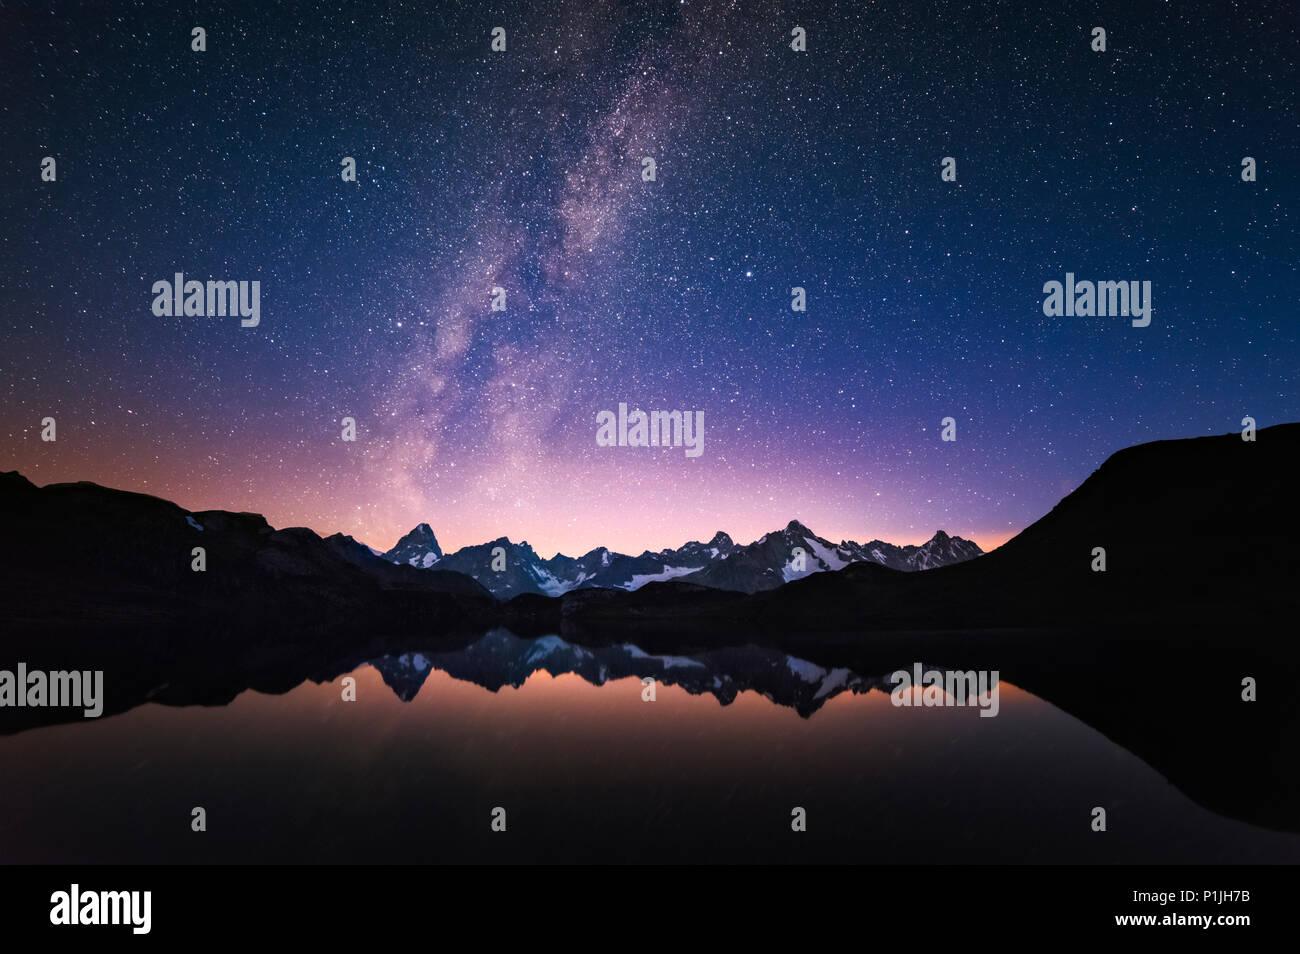 Milky Way over Lac de Fenetre, Valais, Switzerland - Stock Image